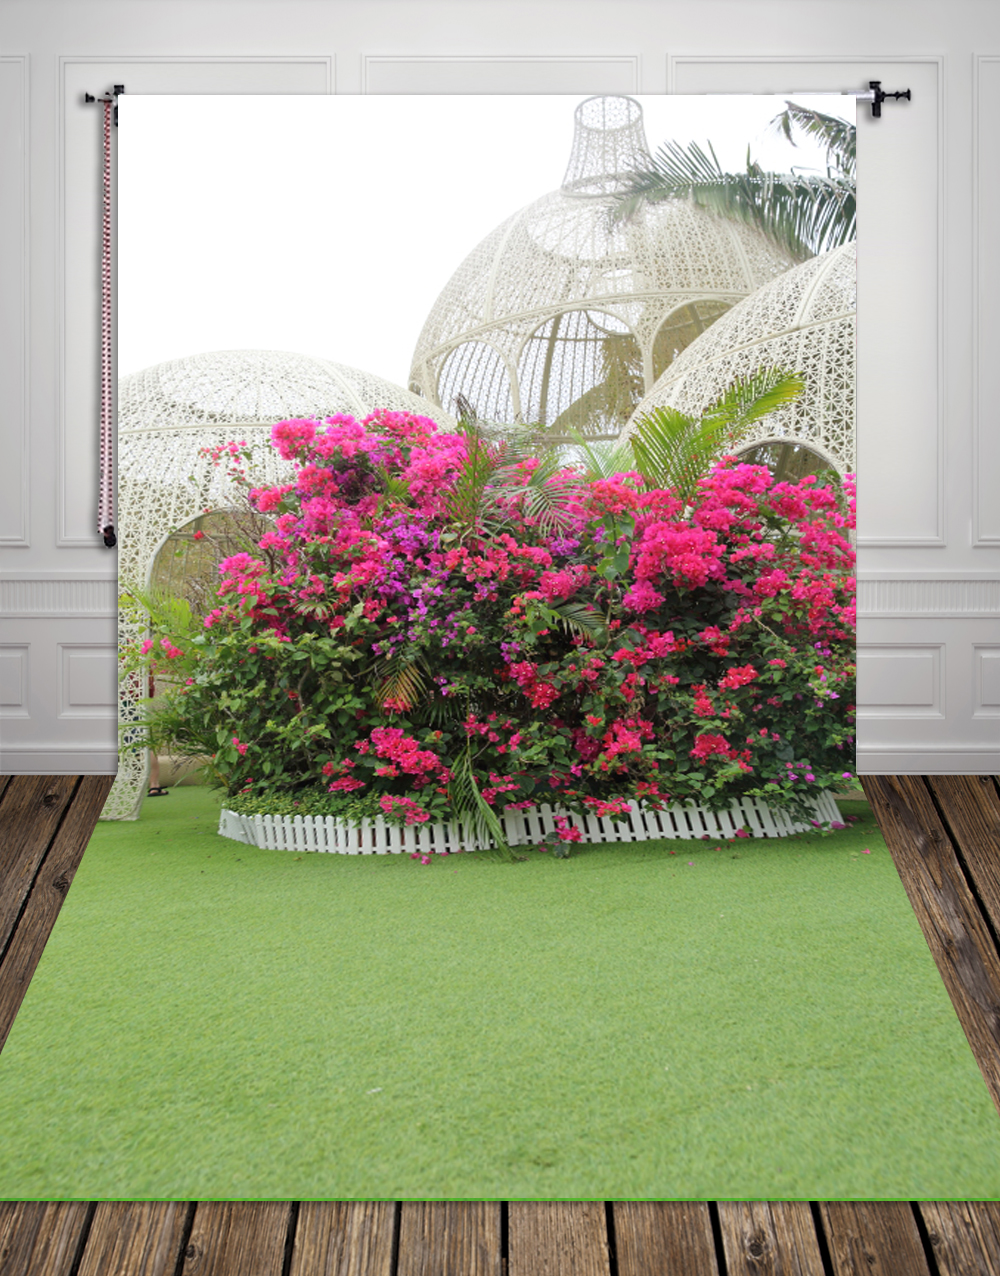 Phuket Island flower printed backdrops for photo studio Digital printing outdoor background for photography XT 3417